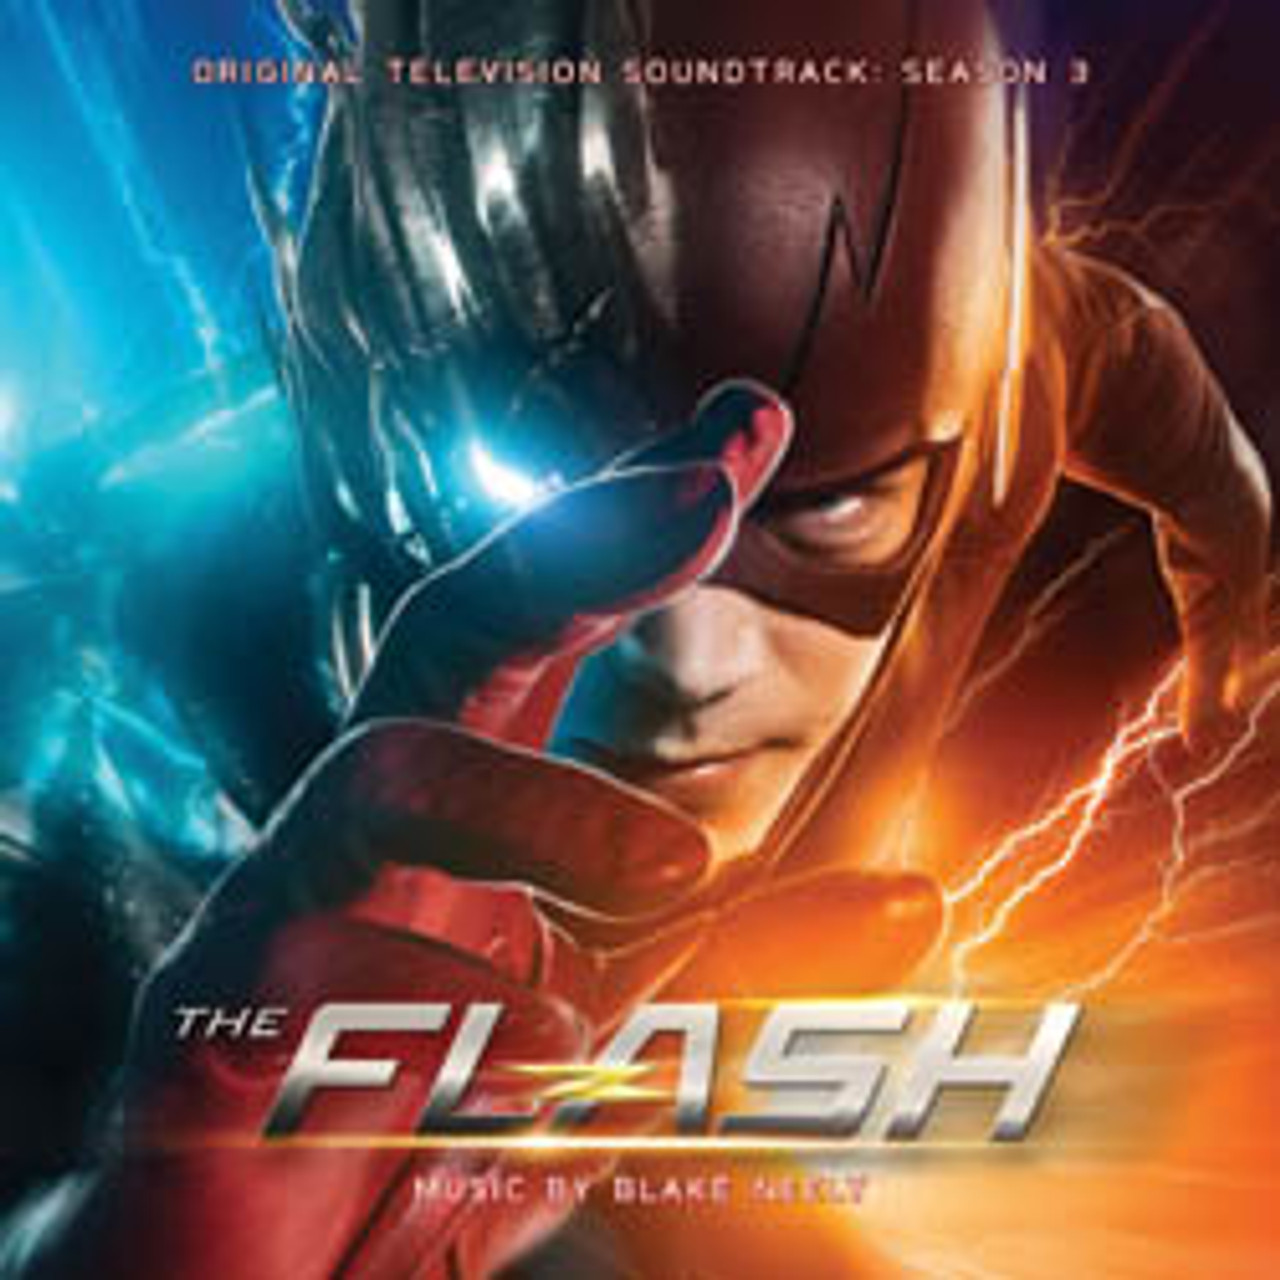 FLASH SEASON 3, THE: LIMITED EDITION